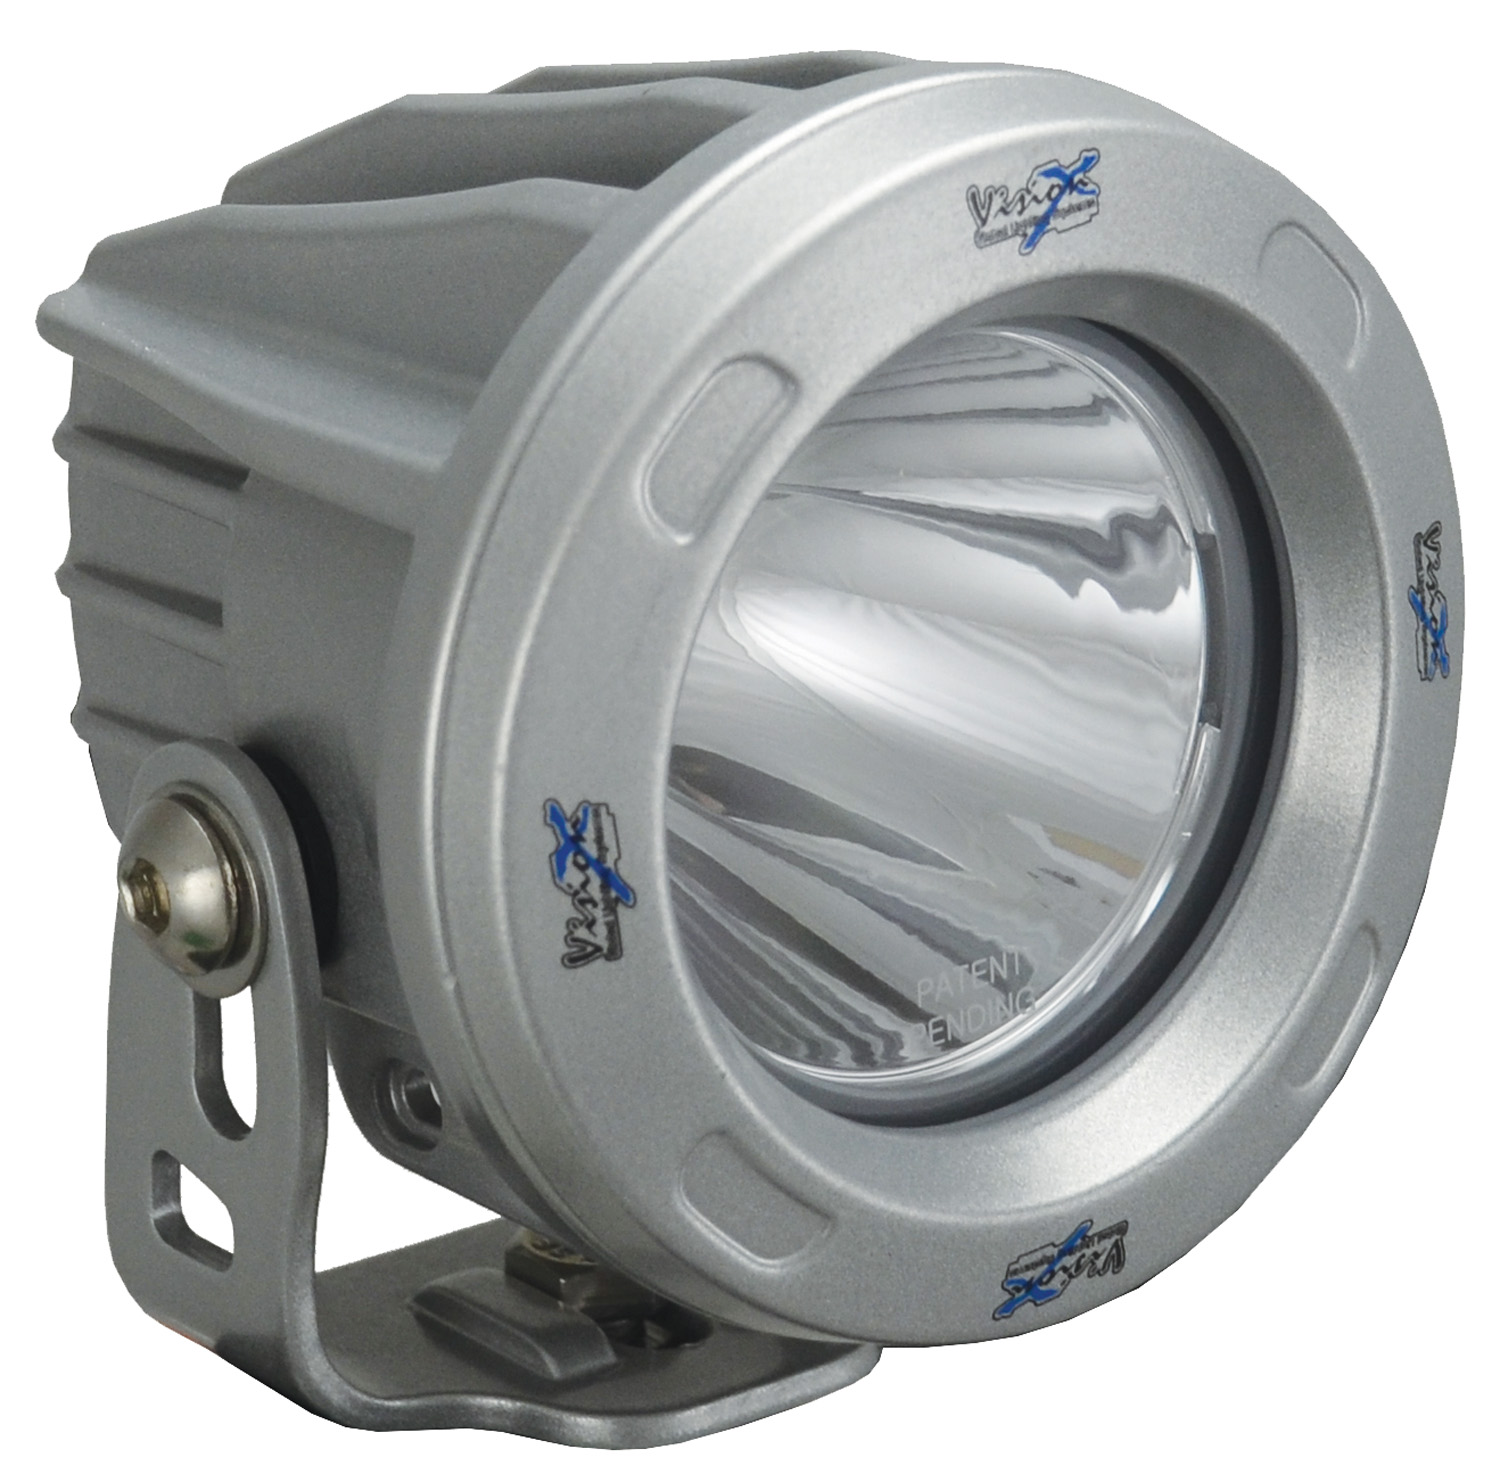 OPTIMUS ROUND SILVER 1 10W LED 10ç NARROW